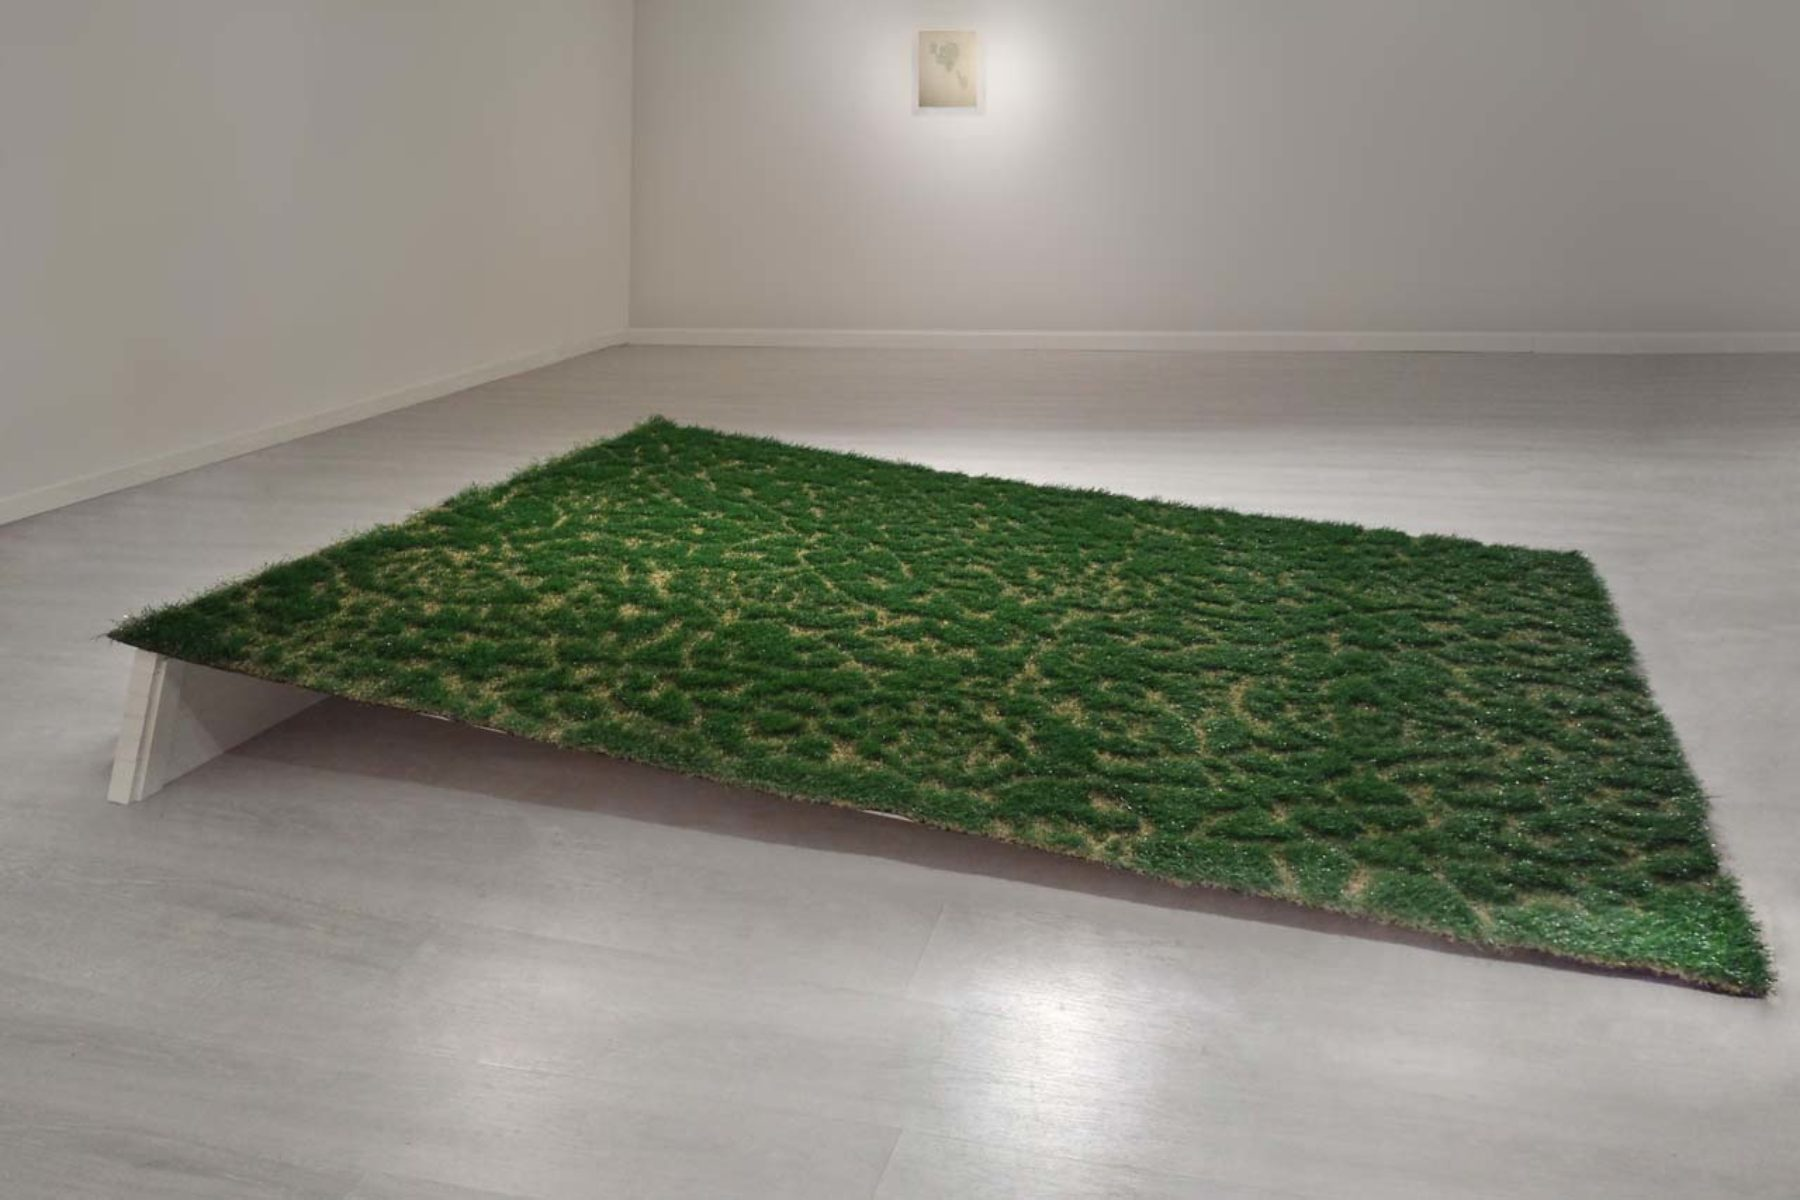 Laura Pozzar, Keep off the grass (carpet), 2013, cutted artificial grass, 230 x 200 cm